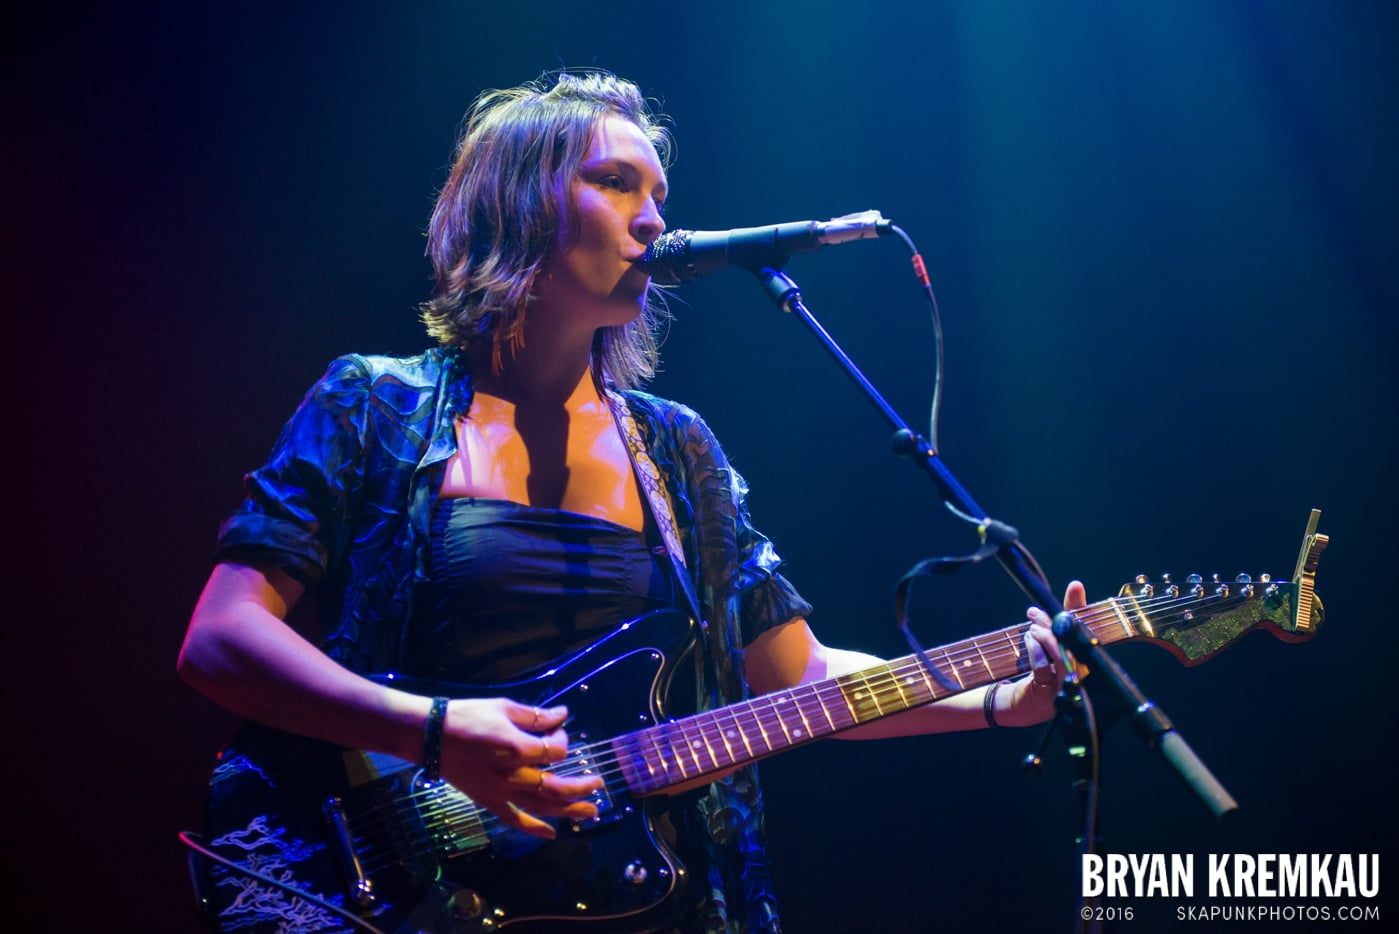 Meredith Sheldon @ Gramercy Theatre, NYC - 11.12.14 (7)